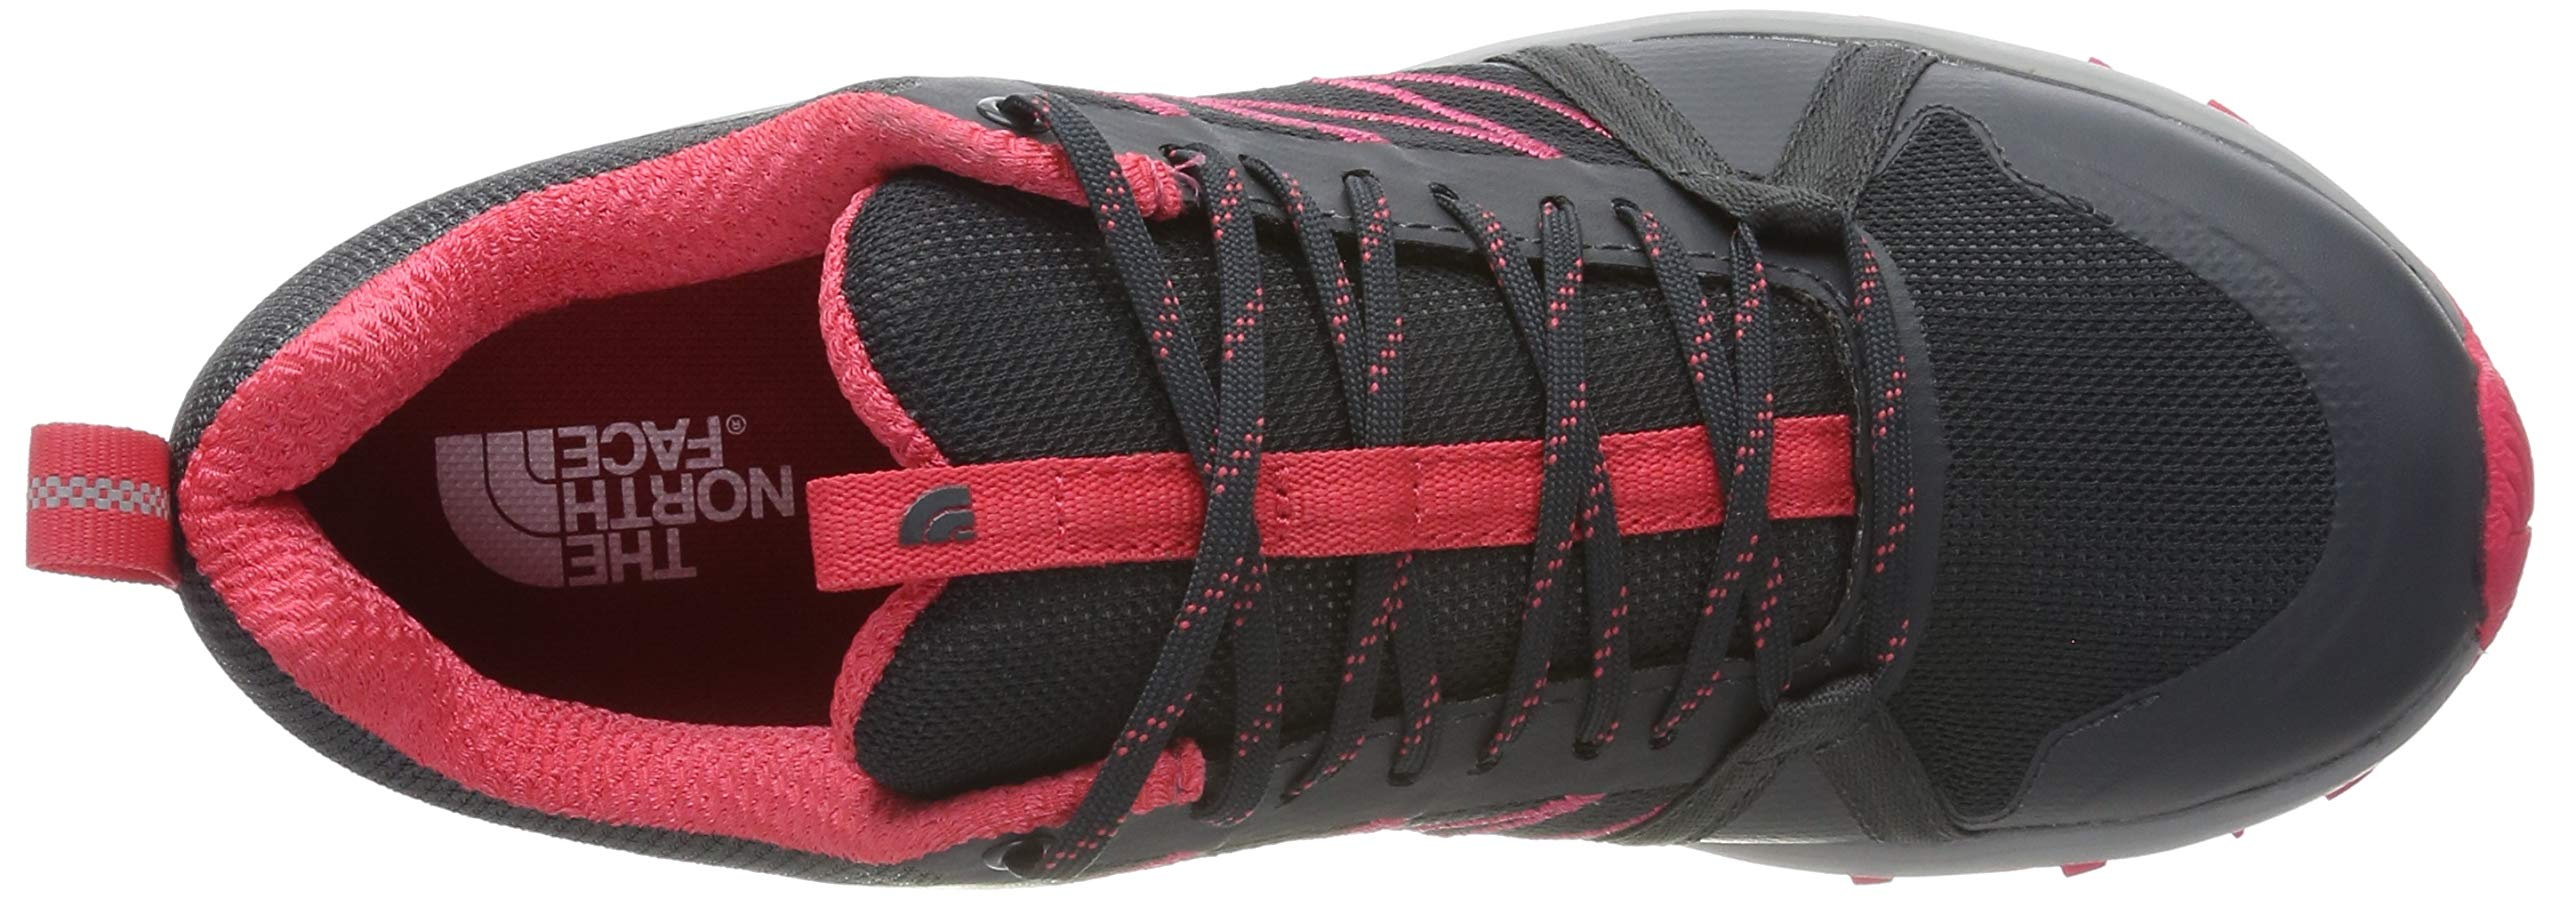 THE NORTH FACE Women's W Litewave Fastpack Ii Low Rise Hiking Boots 7